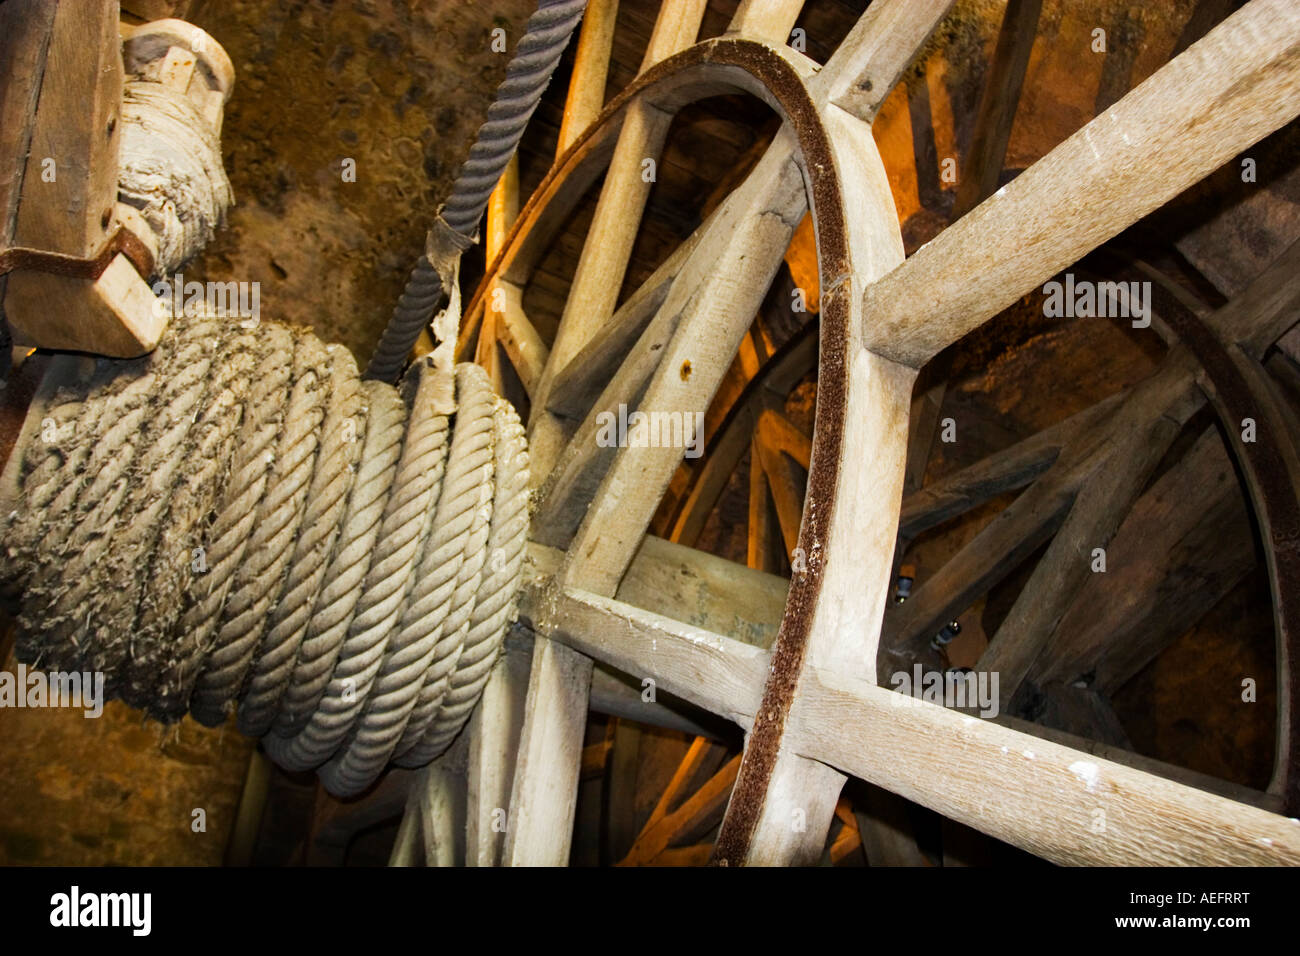 Winch mechanism for lifting supplies into the abbey of St Michel - Stock Image